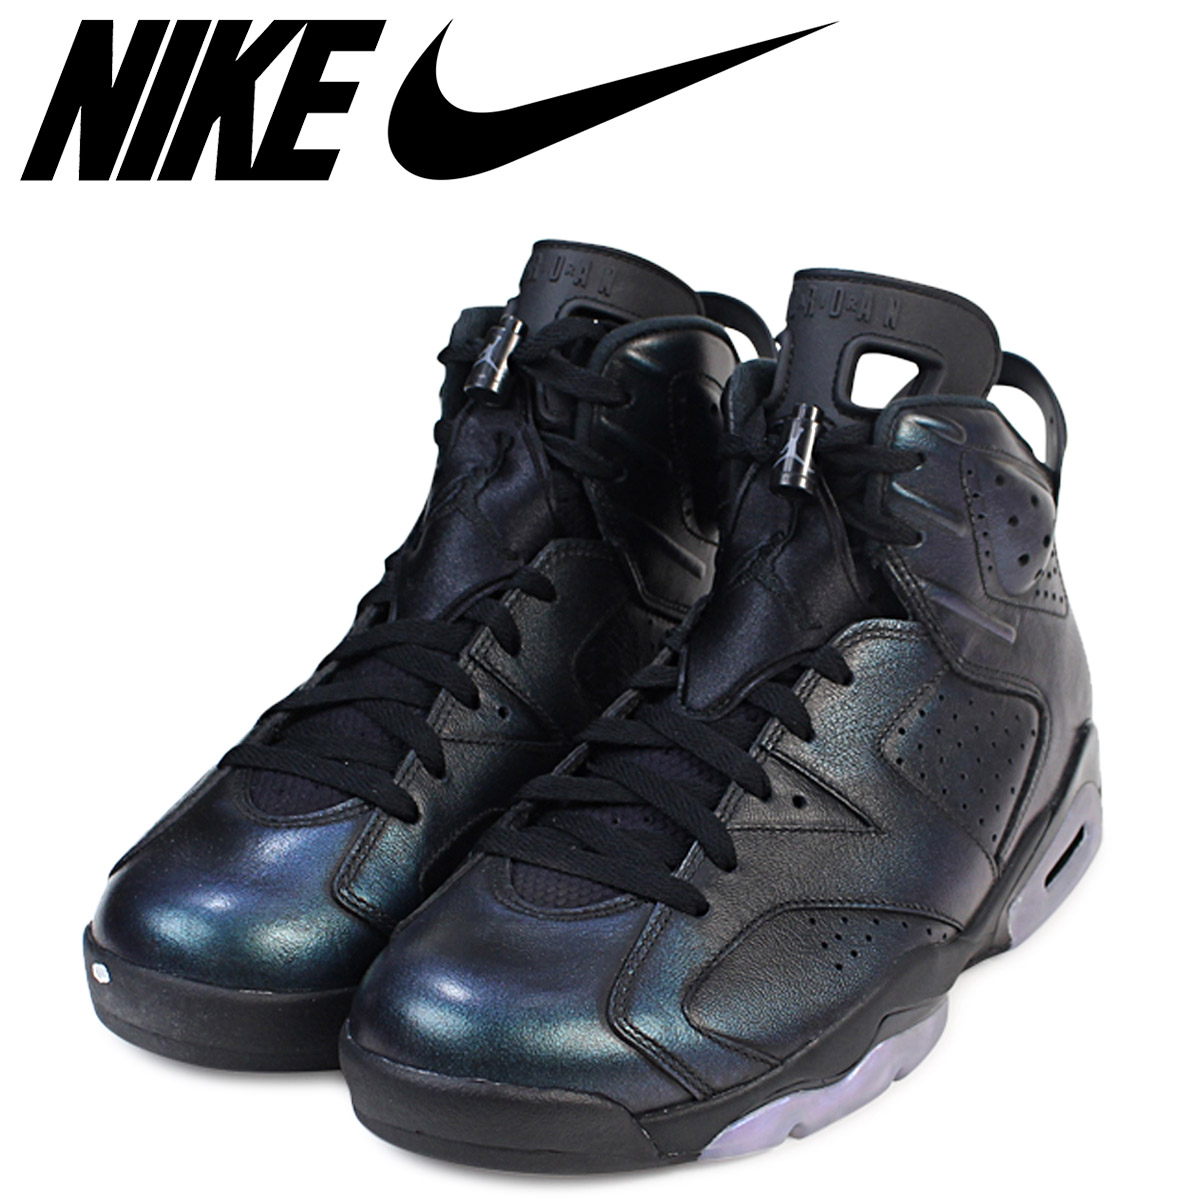 quality design 50730 b1335 Nike NIKE Air Jordan 6 nostalgic sneakers AIR JORDAN 6 RETRO ALL-STAR men  907,961-015 shoes black